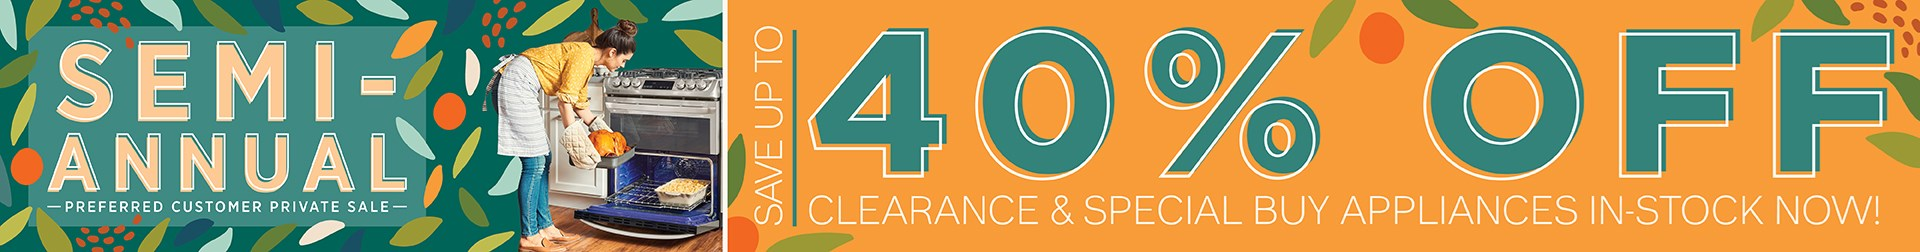 Furniture & ApplianceMart Spring Sale